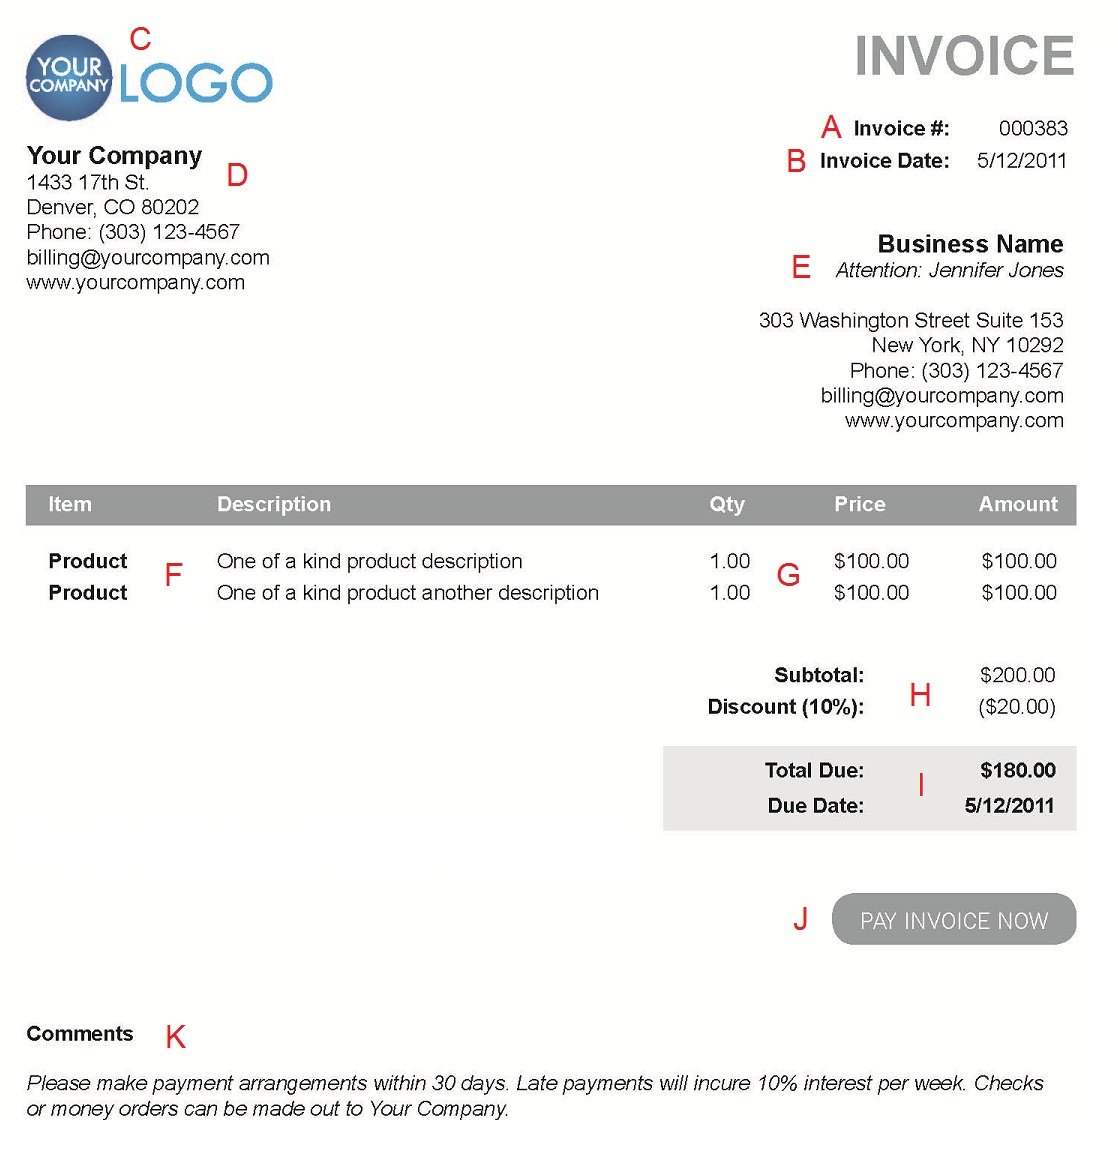 Coolmathgamesus  Picturesque The  Different Sections Of An Electronic Payment Invoice With Lovable A  With Enchanting Ez Receipts Also How Do You Spell Receipt In Addition Spell Receipt And Enterprise Receipt As Well As Receipt Maker Additionally Receipt Paper From Paysimplecom With Coolmathgamesus  Lovable The  Different Sections Of An Electronic Payment Invoice With Enchanting A  And Picturesque Ez Receipts Also How Do You Spell Receipt In Addition Spell Receipt From Paysimplecom